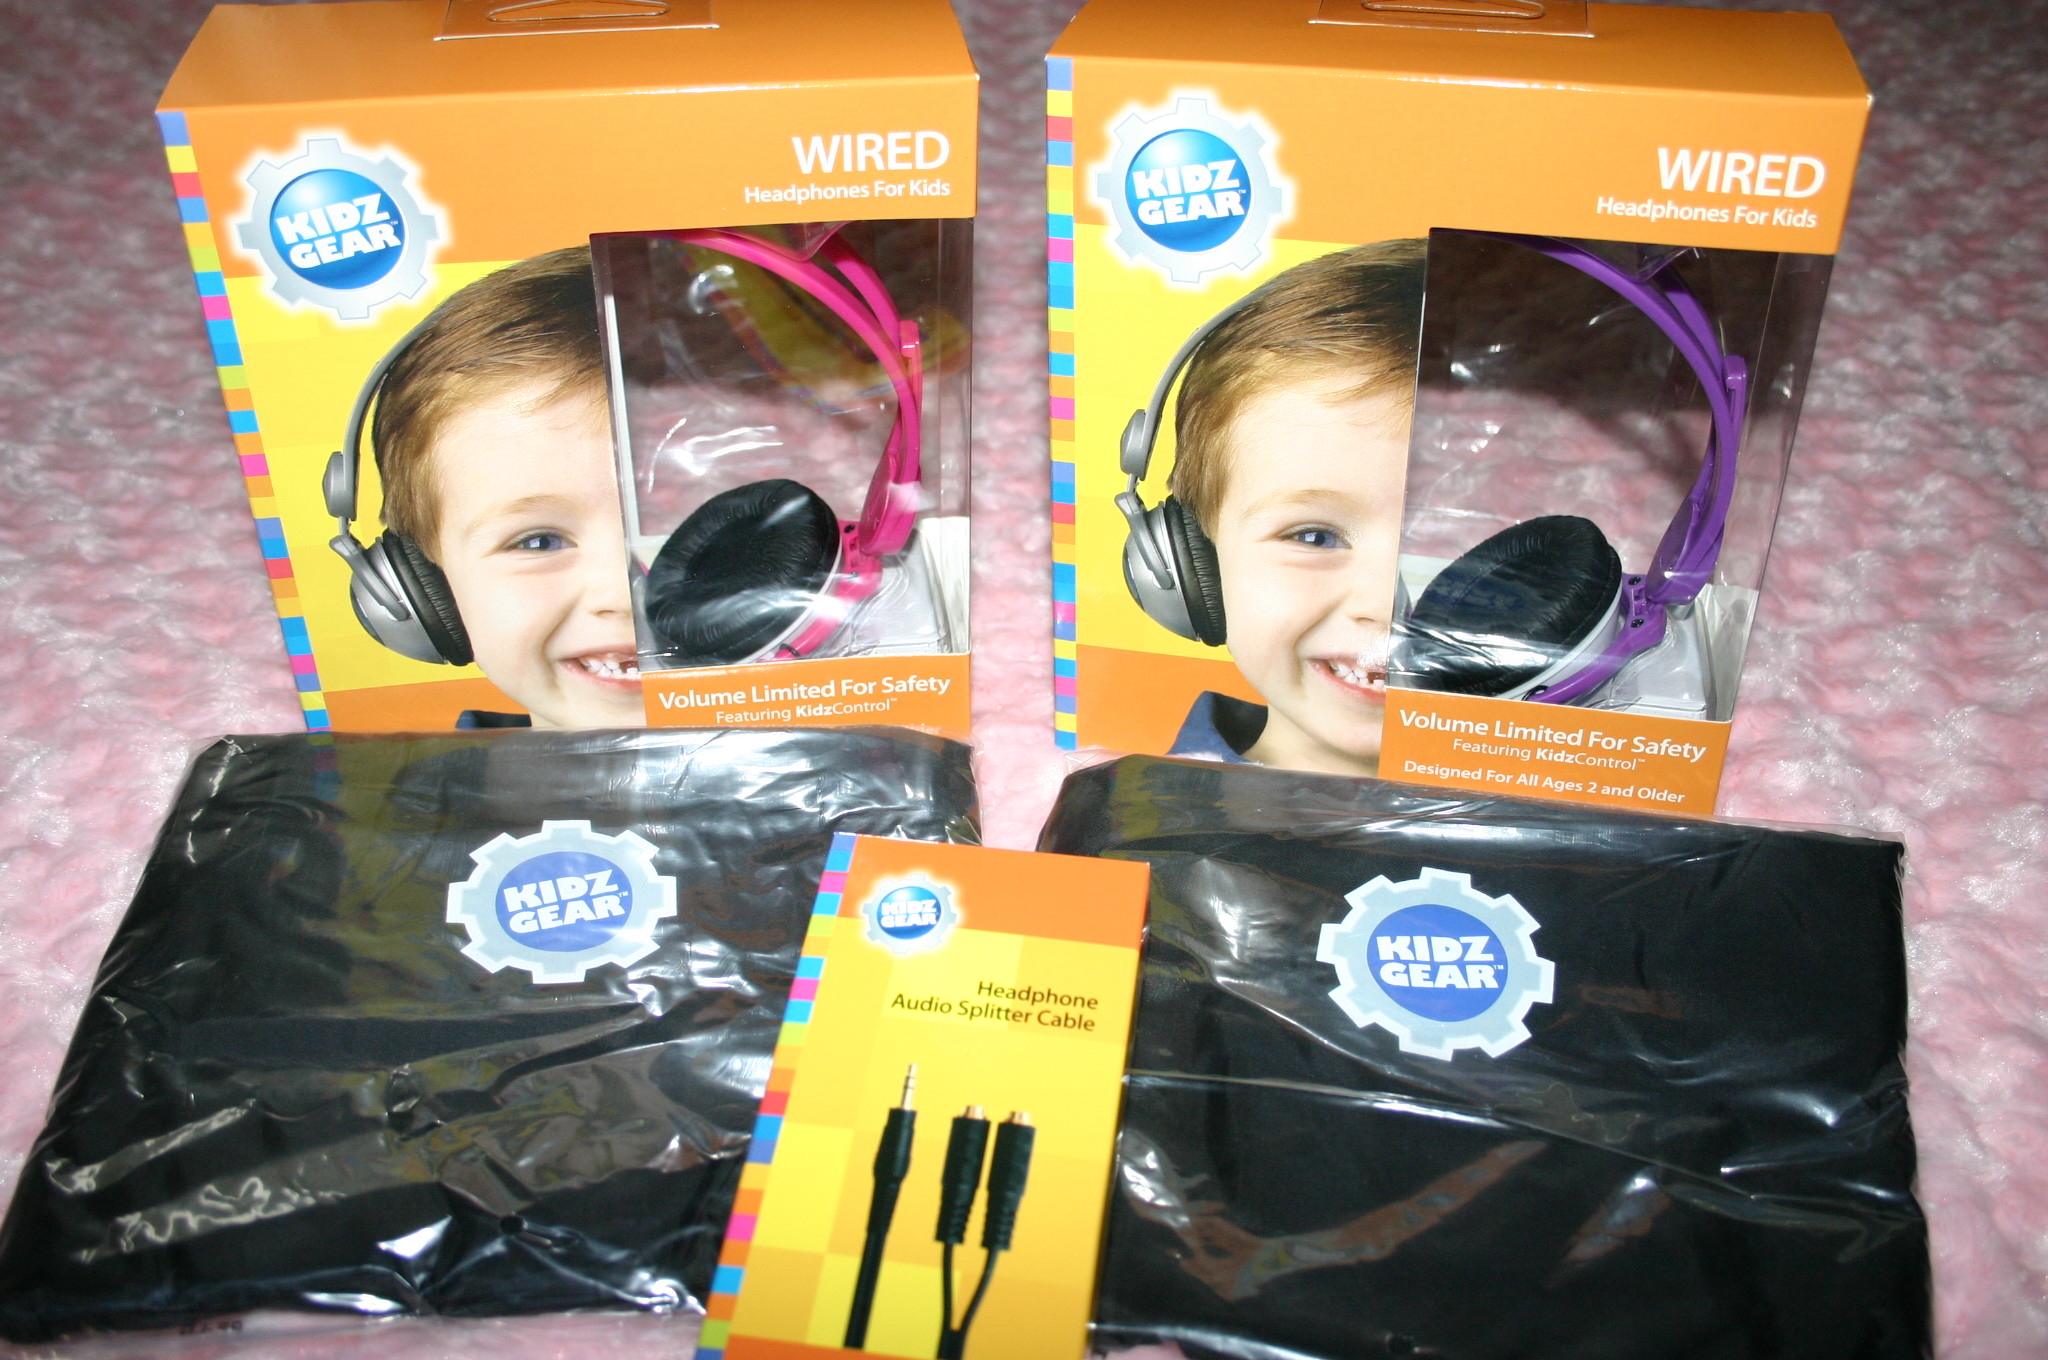 Kidz Gear Headphones Giveaway >> Hgg Kidz Gear Headphones Review Emily Reviews